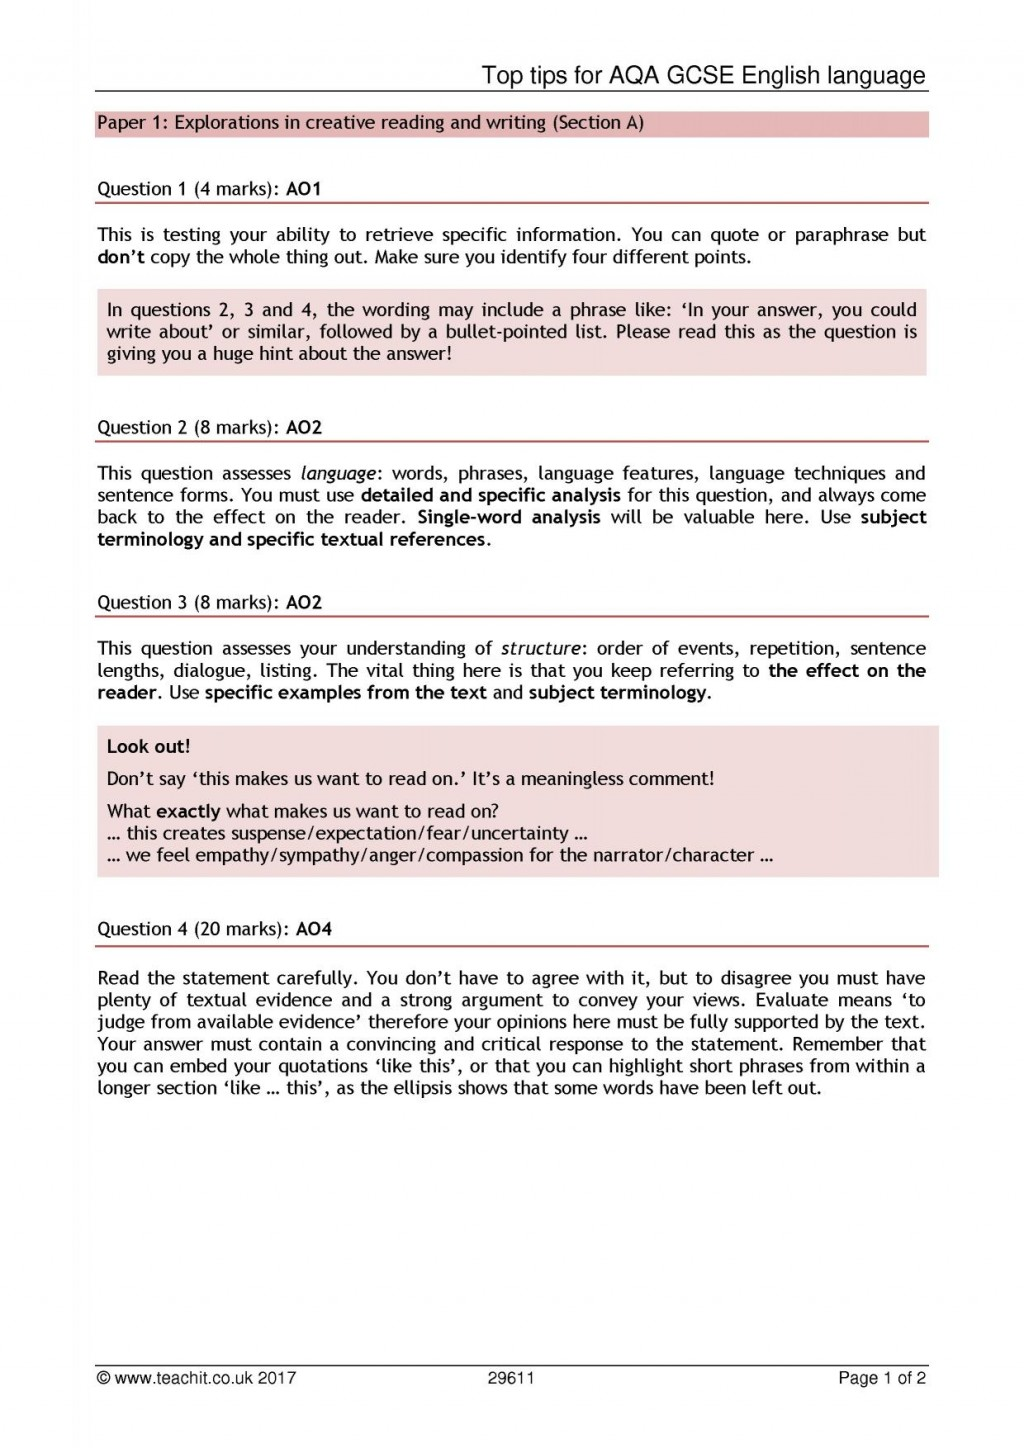 011 Research Paper Example Of Questions Pdf X68072 Php Pagespeed Ic Sensational Examples Qualitative And Hypotheses Quantitative Large